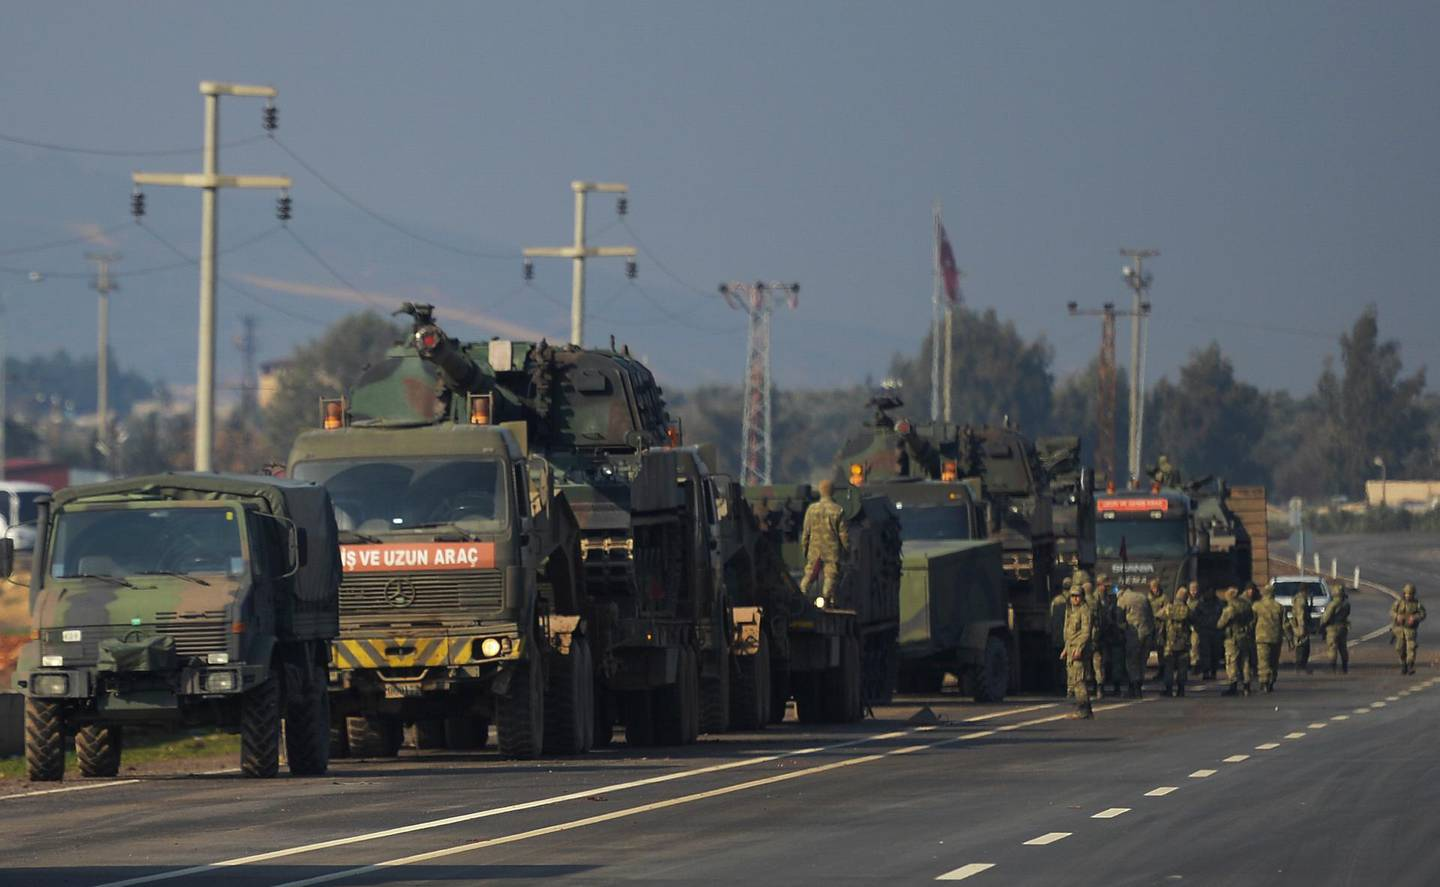 FILE - In this Feb. 14, 2020, file photo, Turkish troops and artillery prepare to enter Syria, in Reyhanli, Hatay, Turkey. Syria's civil war has long provided a free-for-all battlefield for proxy fighters. But in its ninth year, the war is drawing major foreign actors into direct conflict, with the threat of all-out confrontations becoming a real possibility. (AP Photo, File)